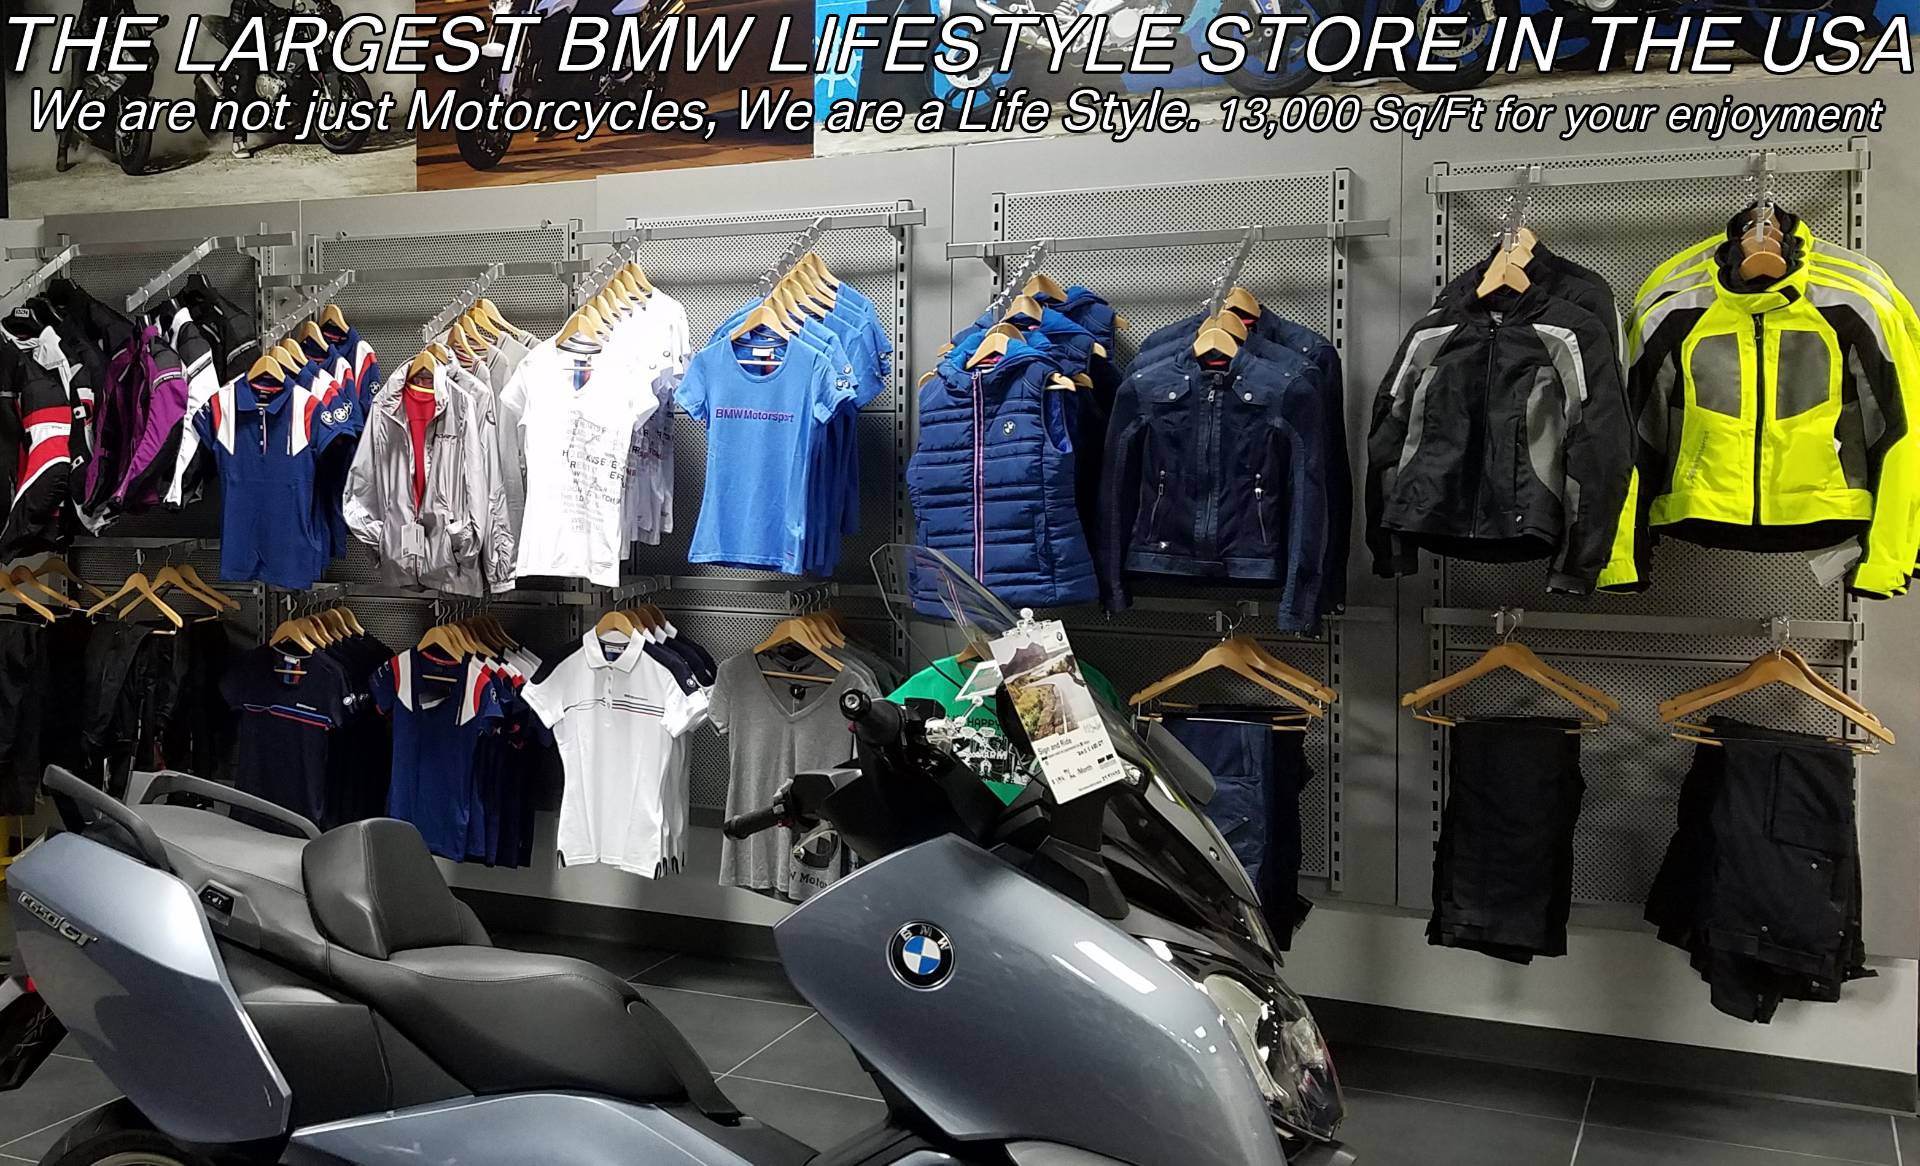 New 2019 BMW C 650 GT for sale, BMW C 650GT for sale, BMW Motorcycle C650GT, new BMW Scooter, Maxi Scooter, BMW. BMW Motorcycles of Miami, Motorcycles of Miami, Motorcycles Miami, New Motorcycles, Used Motorcycles, pre-owned. #BMWMotorcyclesOfMiami #MotorcyclesOfMiami.